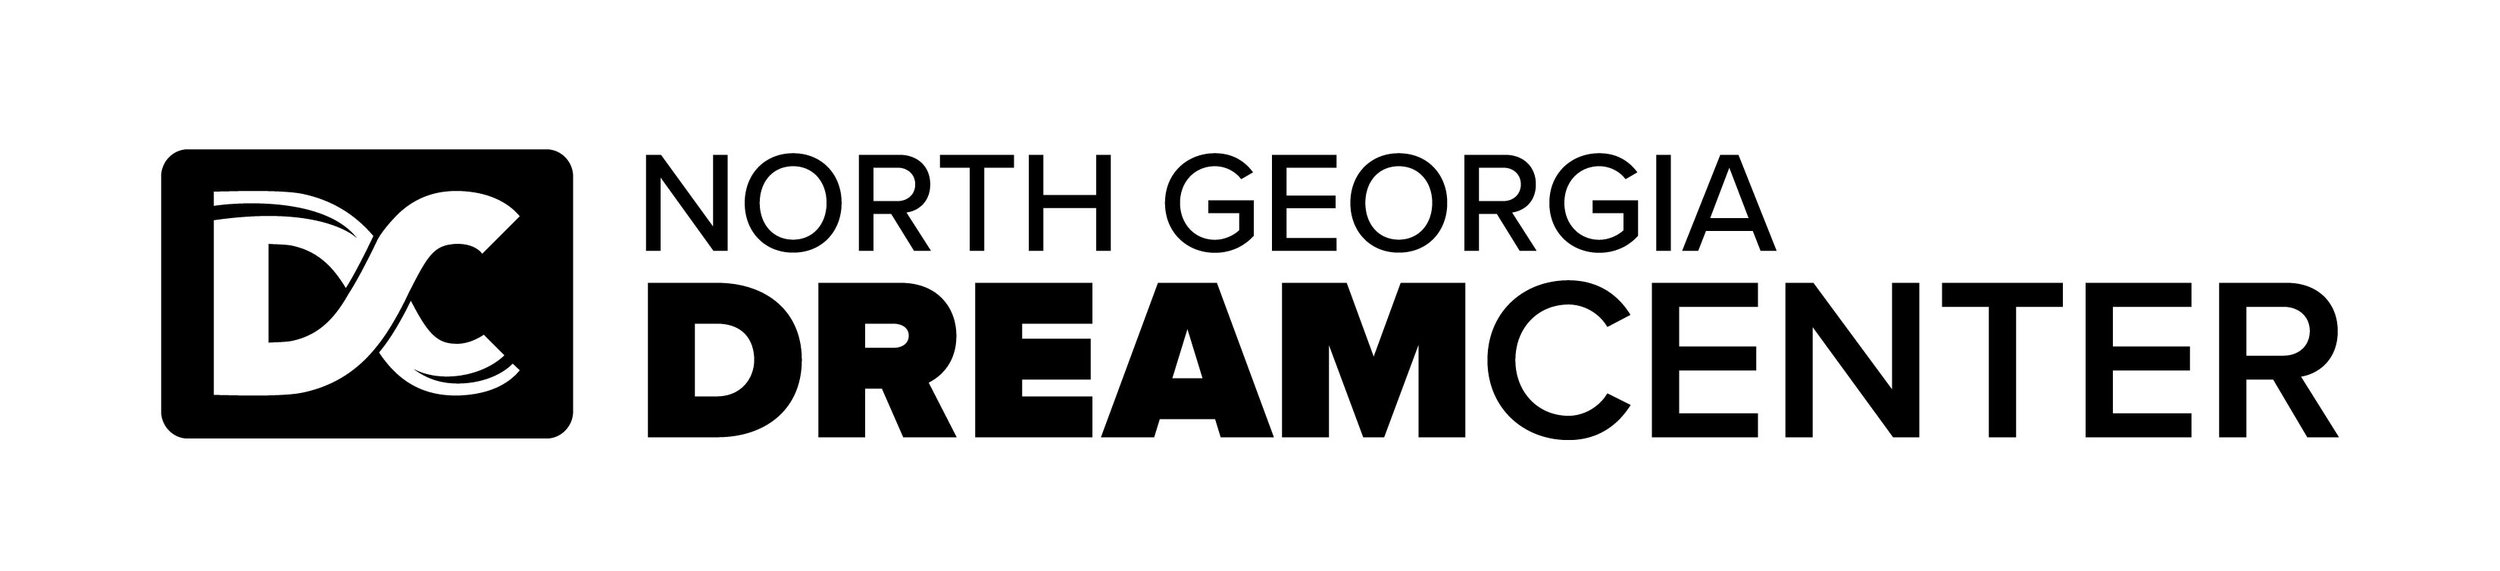 North Georgia Dream Center Black.jpg